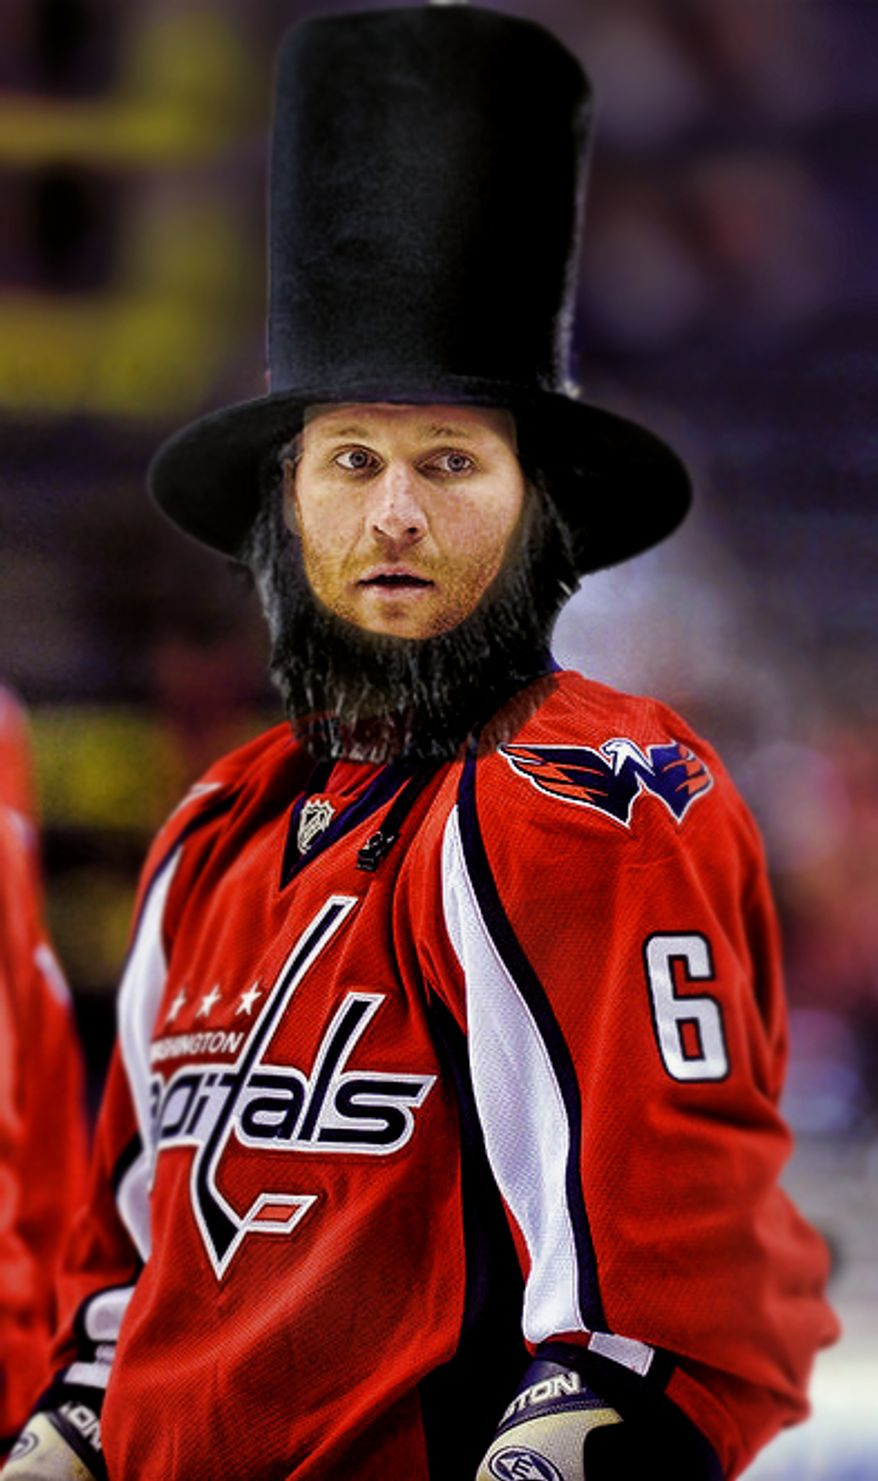 Dennis Wideman as Abraham Lincoln photoshop No. 4 by @gottabgbabe.